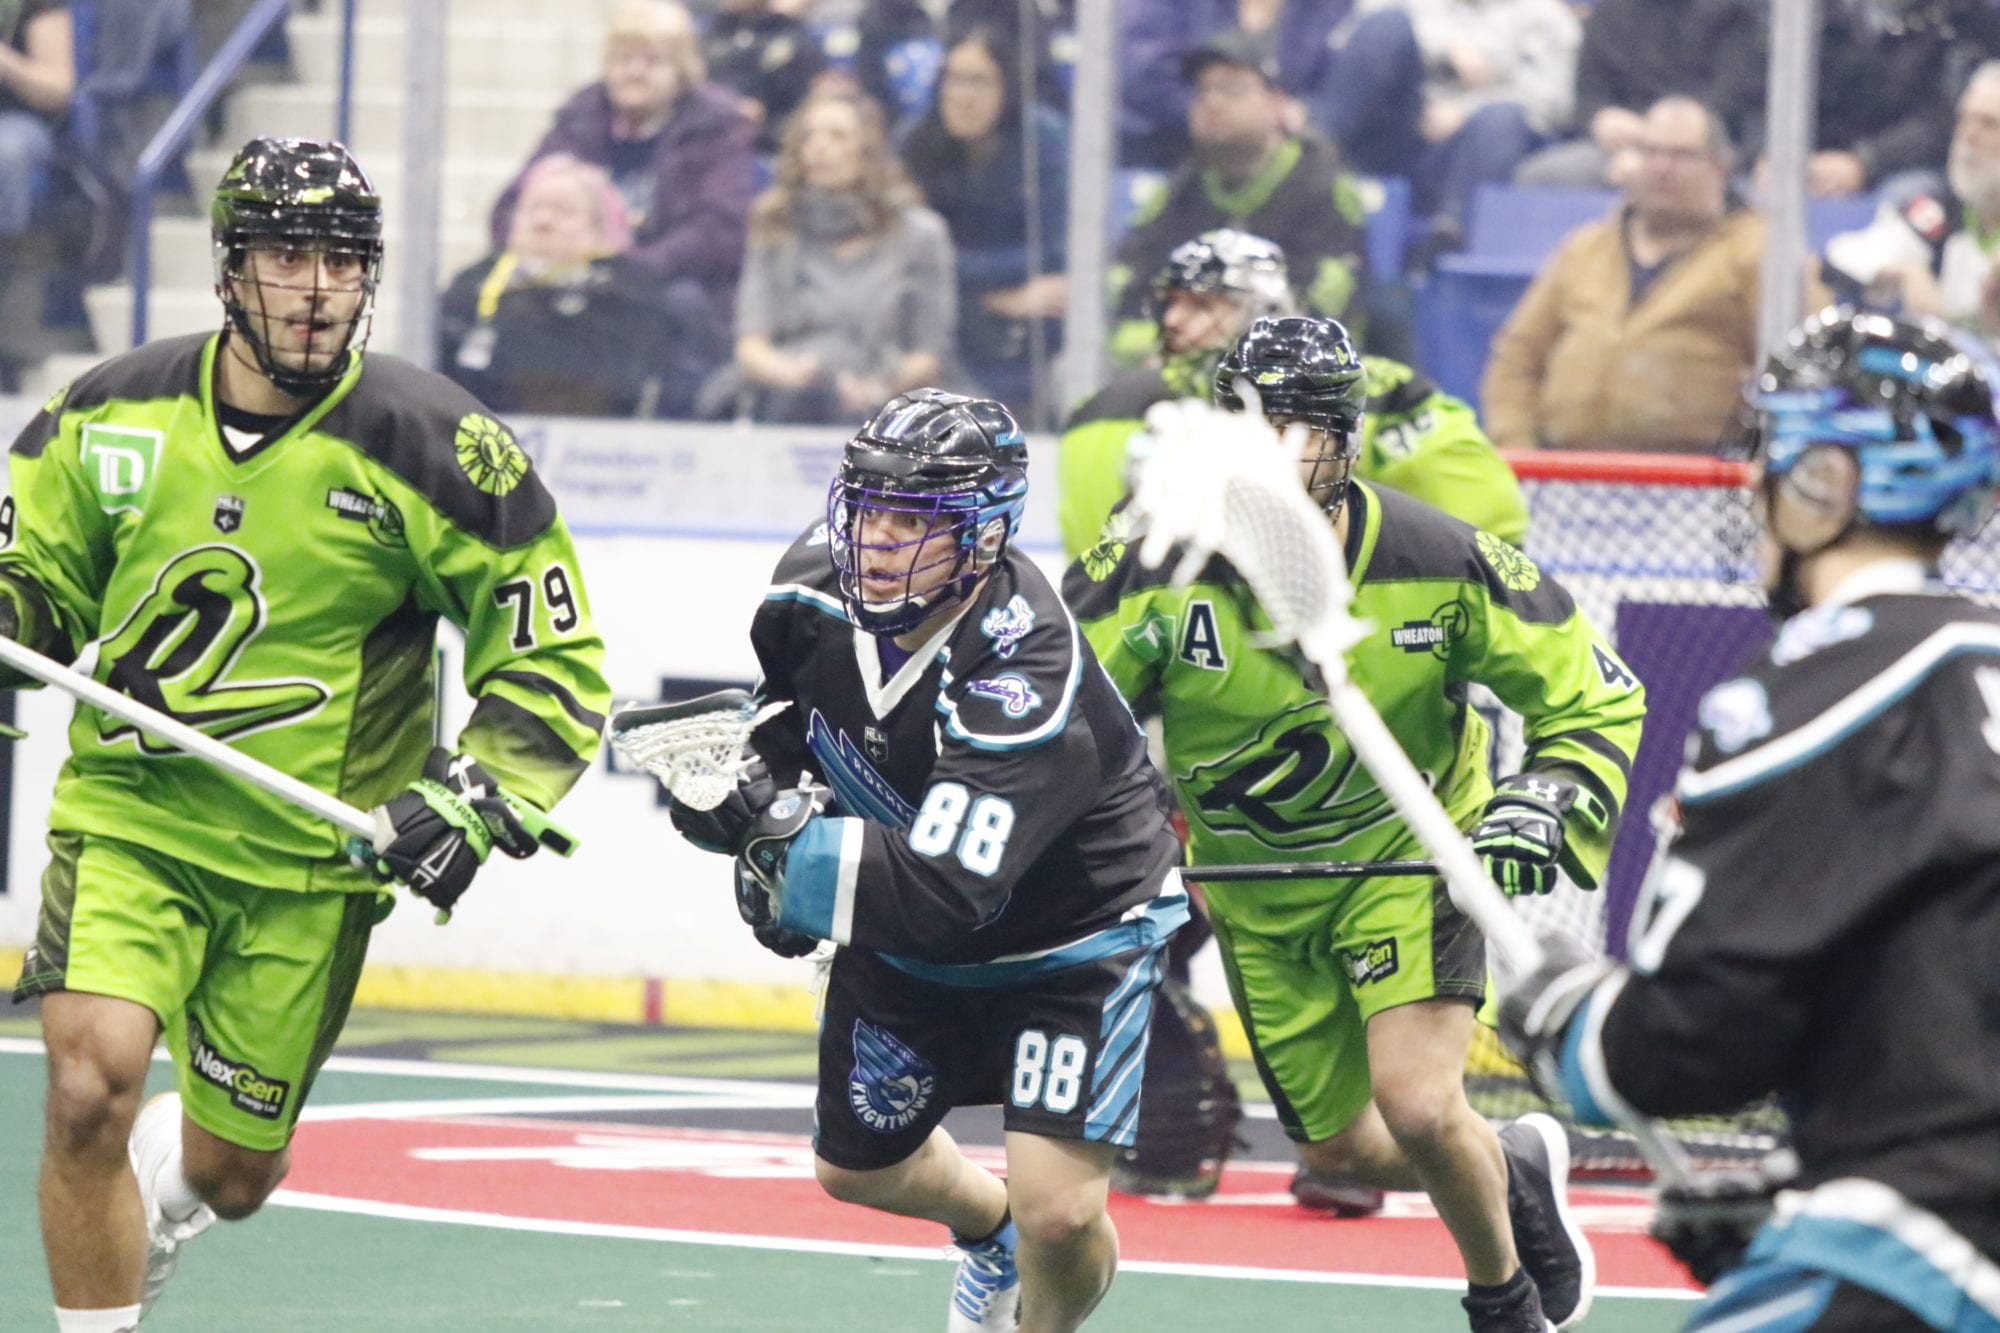 rochester knighthawks nll national lacrosse league